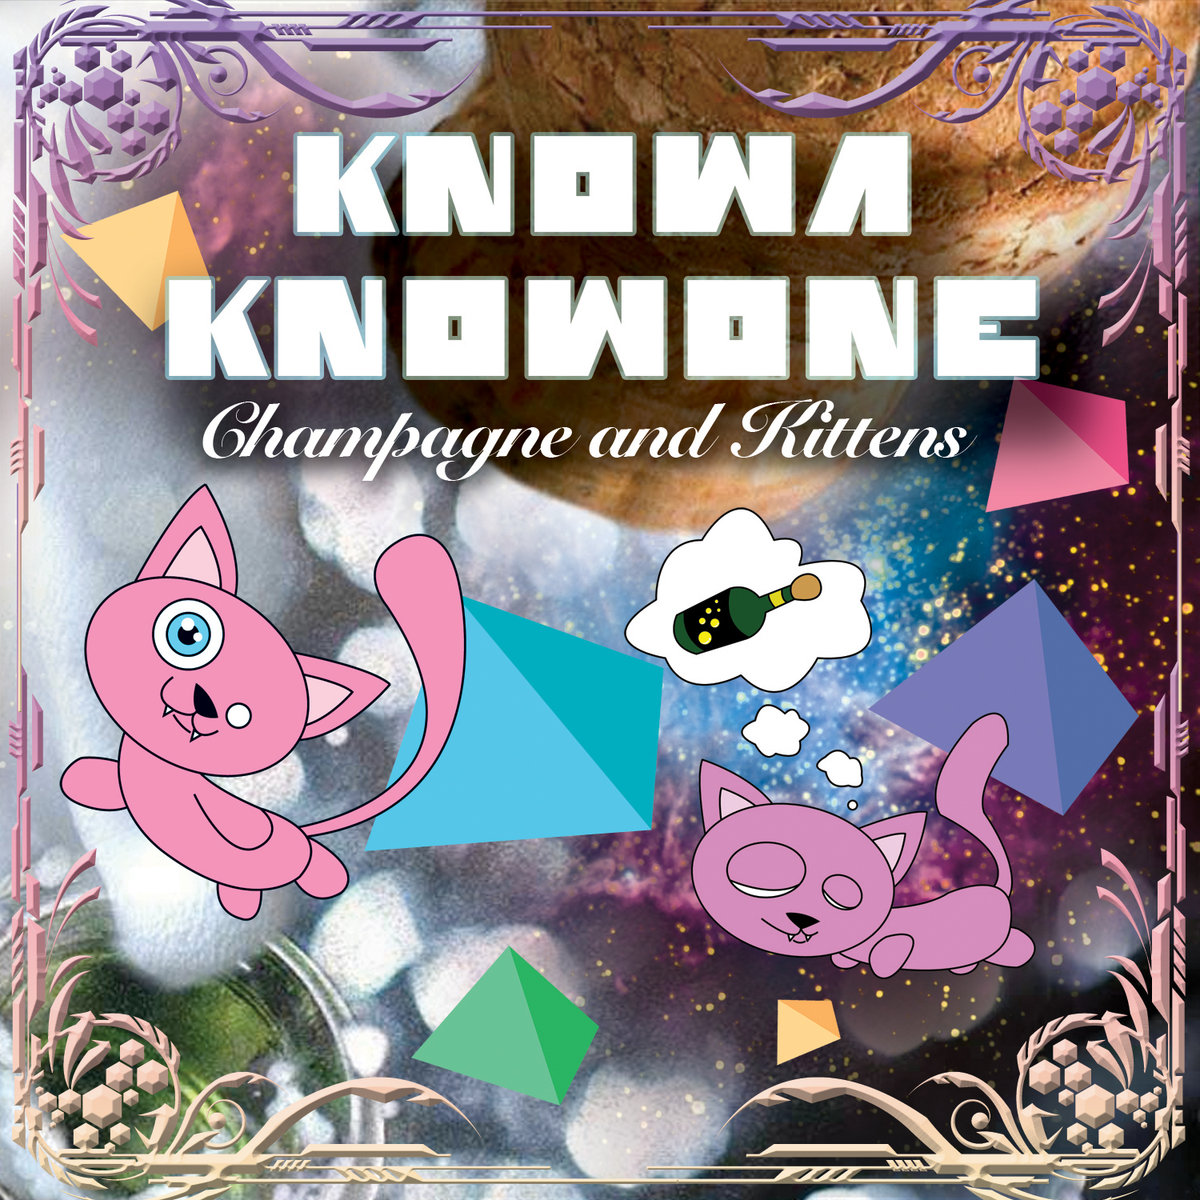 Knowa Knowone - Calle Cartel @ 'Champagne and Kittens' album (bass, electronic)